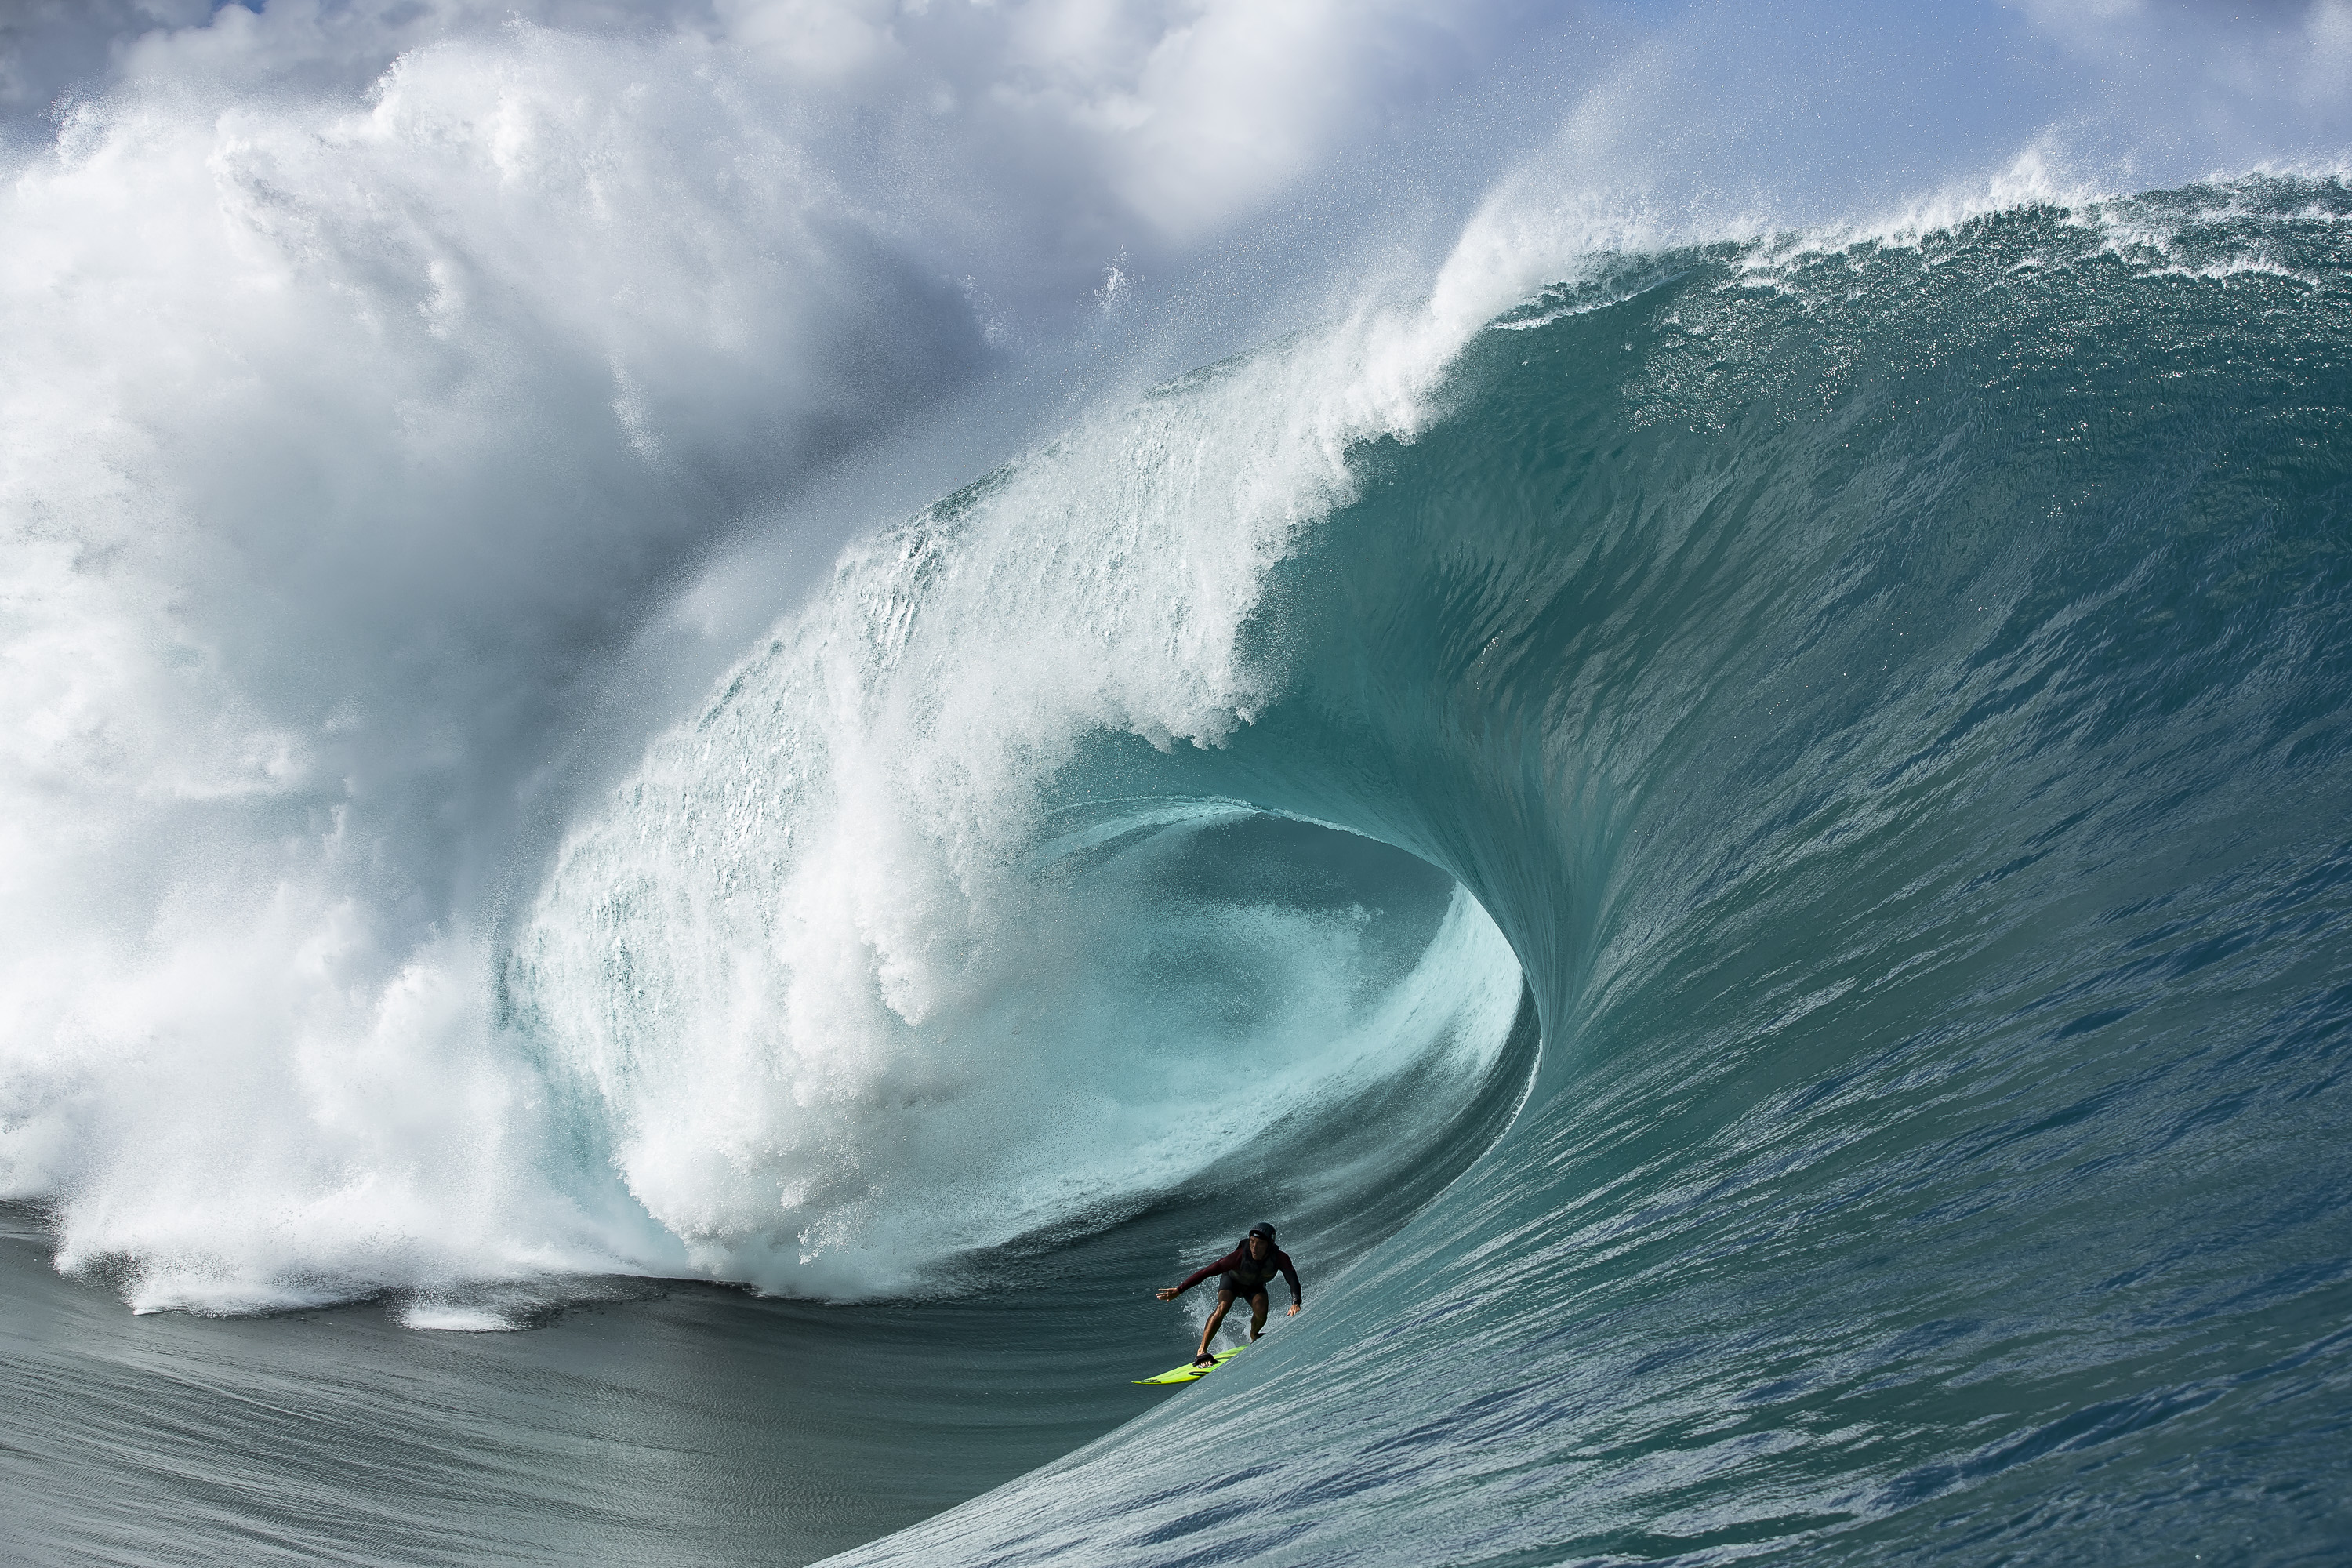 Gallery: Maxing Teahupoo From The Channel